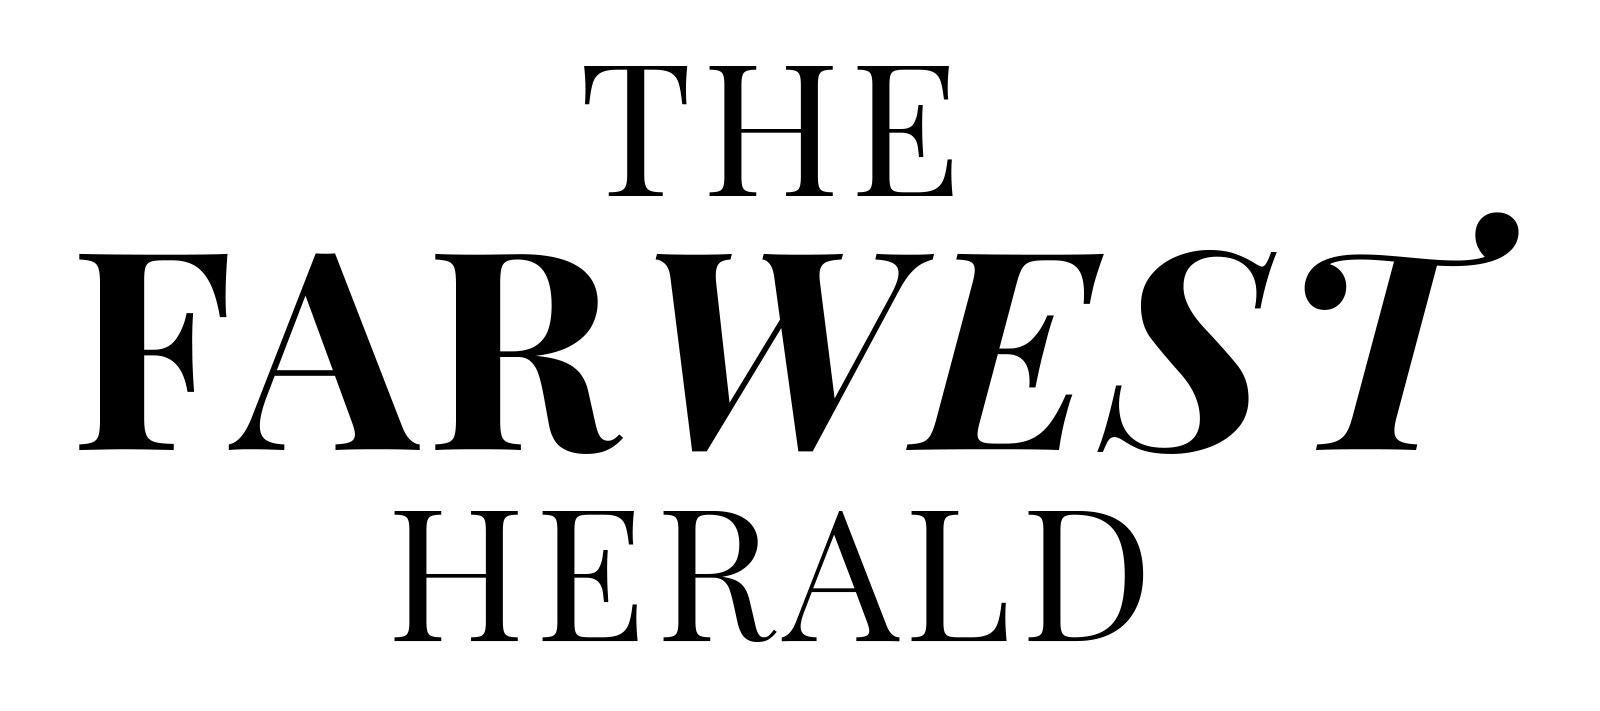 The Farwest Herald Inc.